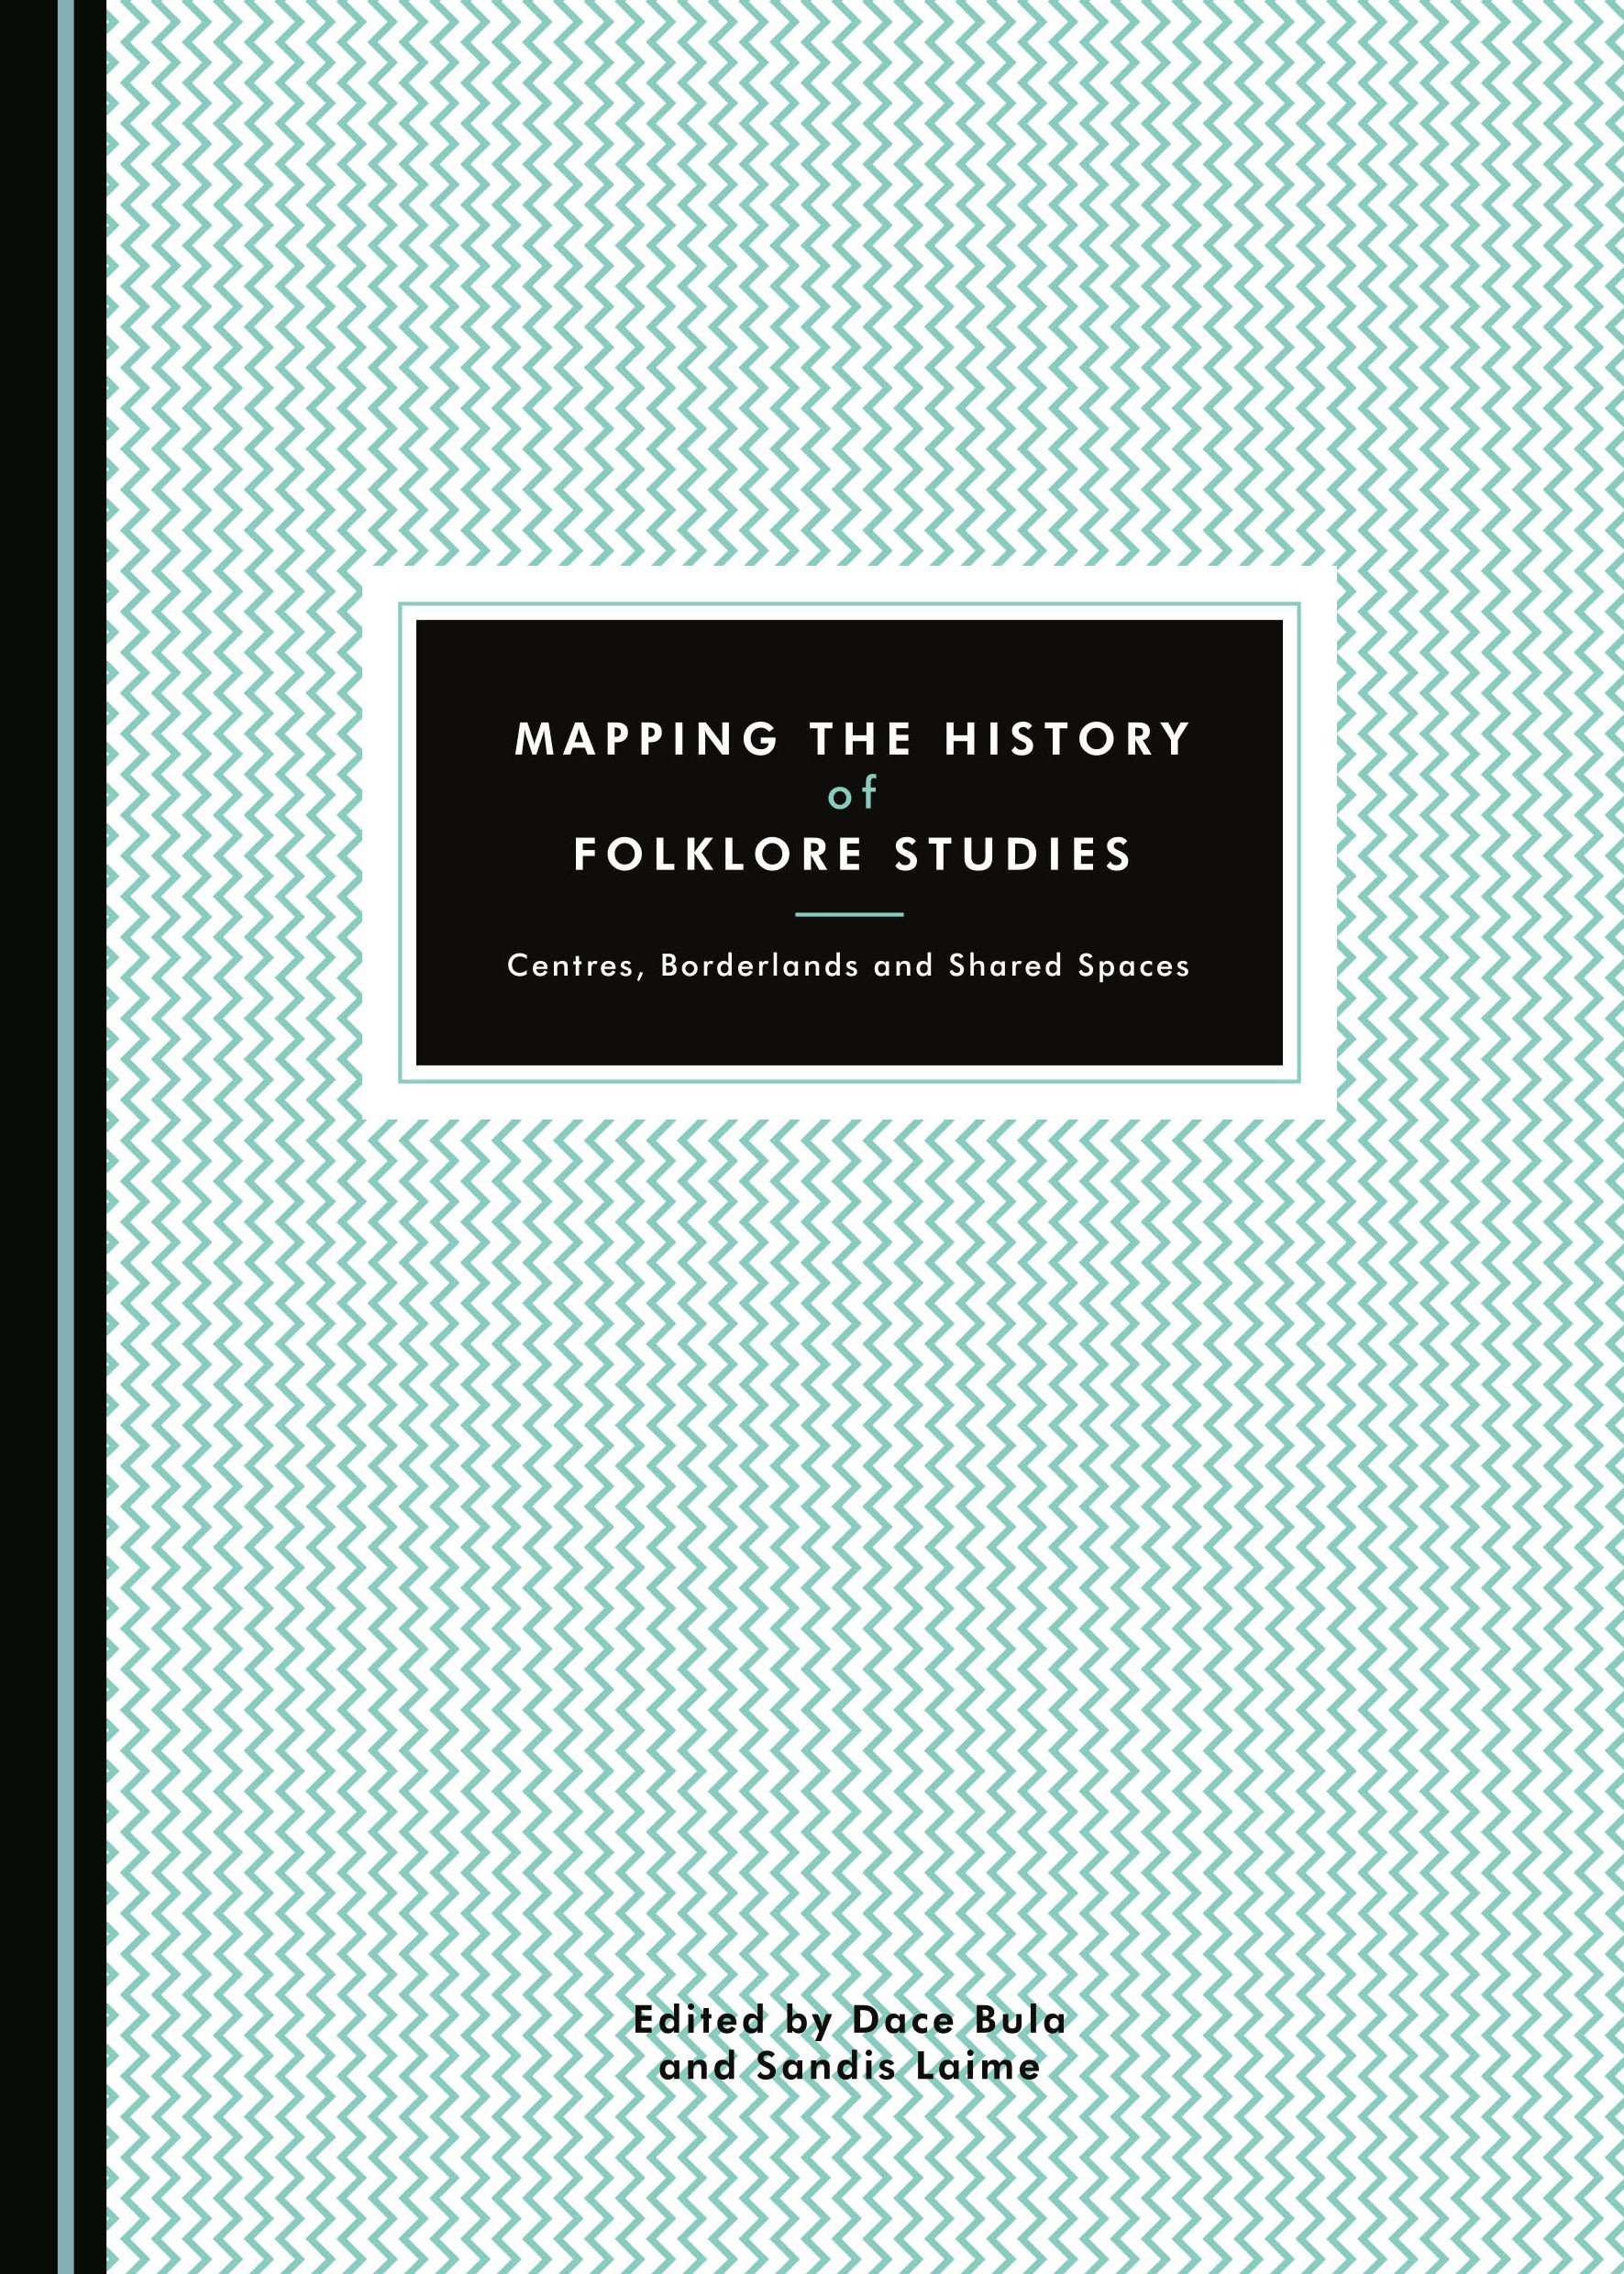 Mapping the History of Folklore Studies: Centres, Borderlands and Shared Spaces